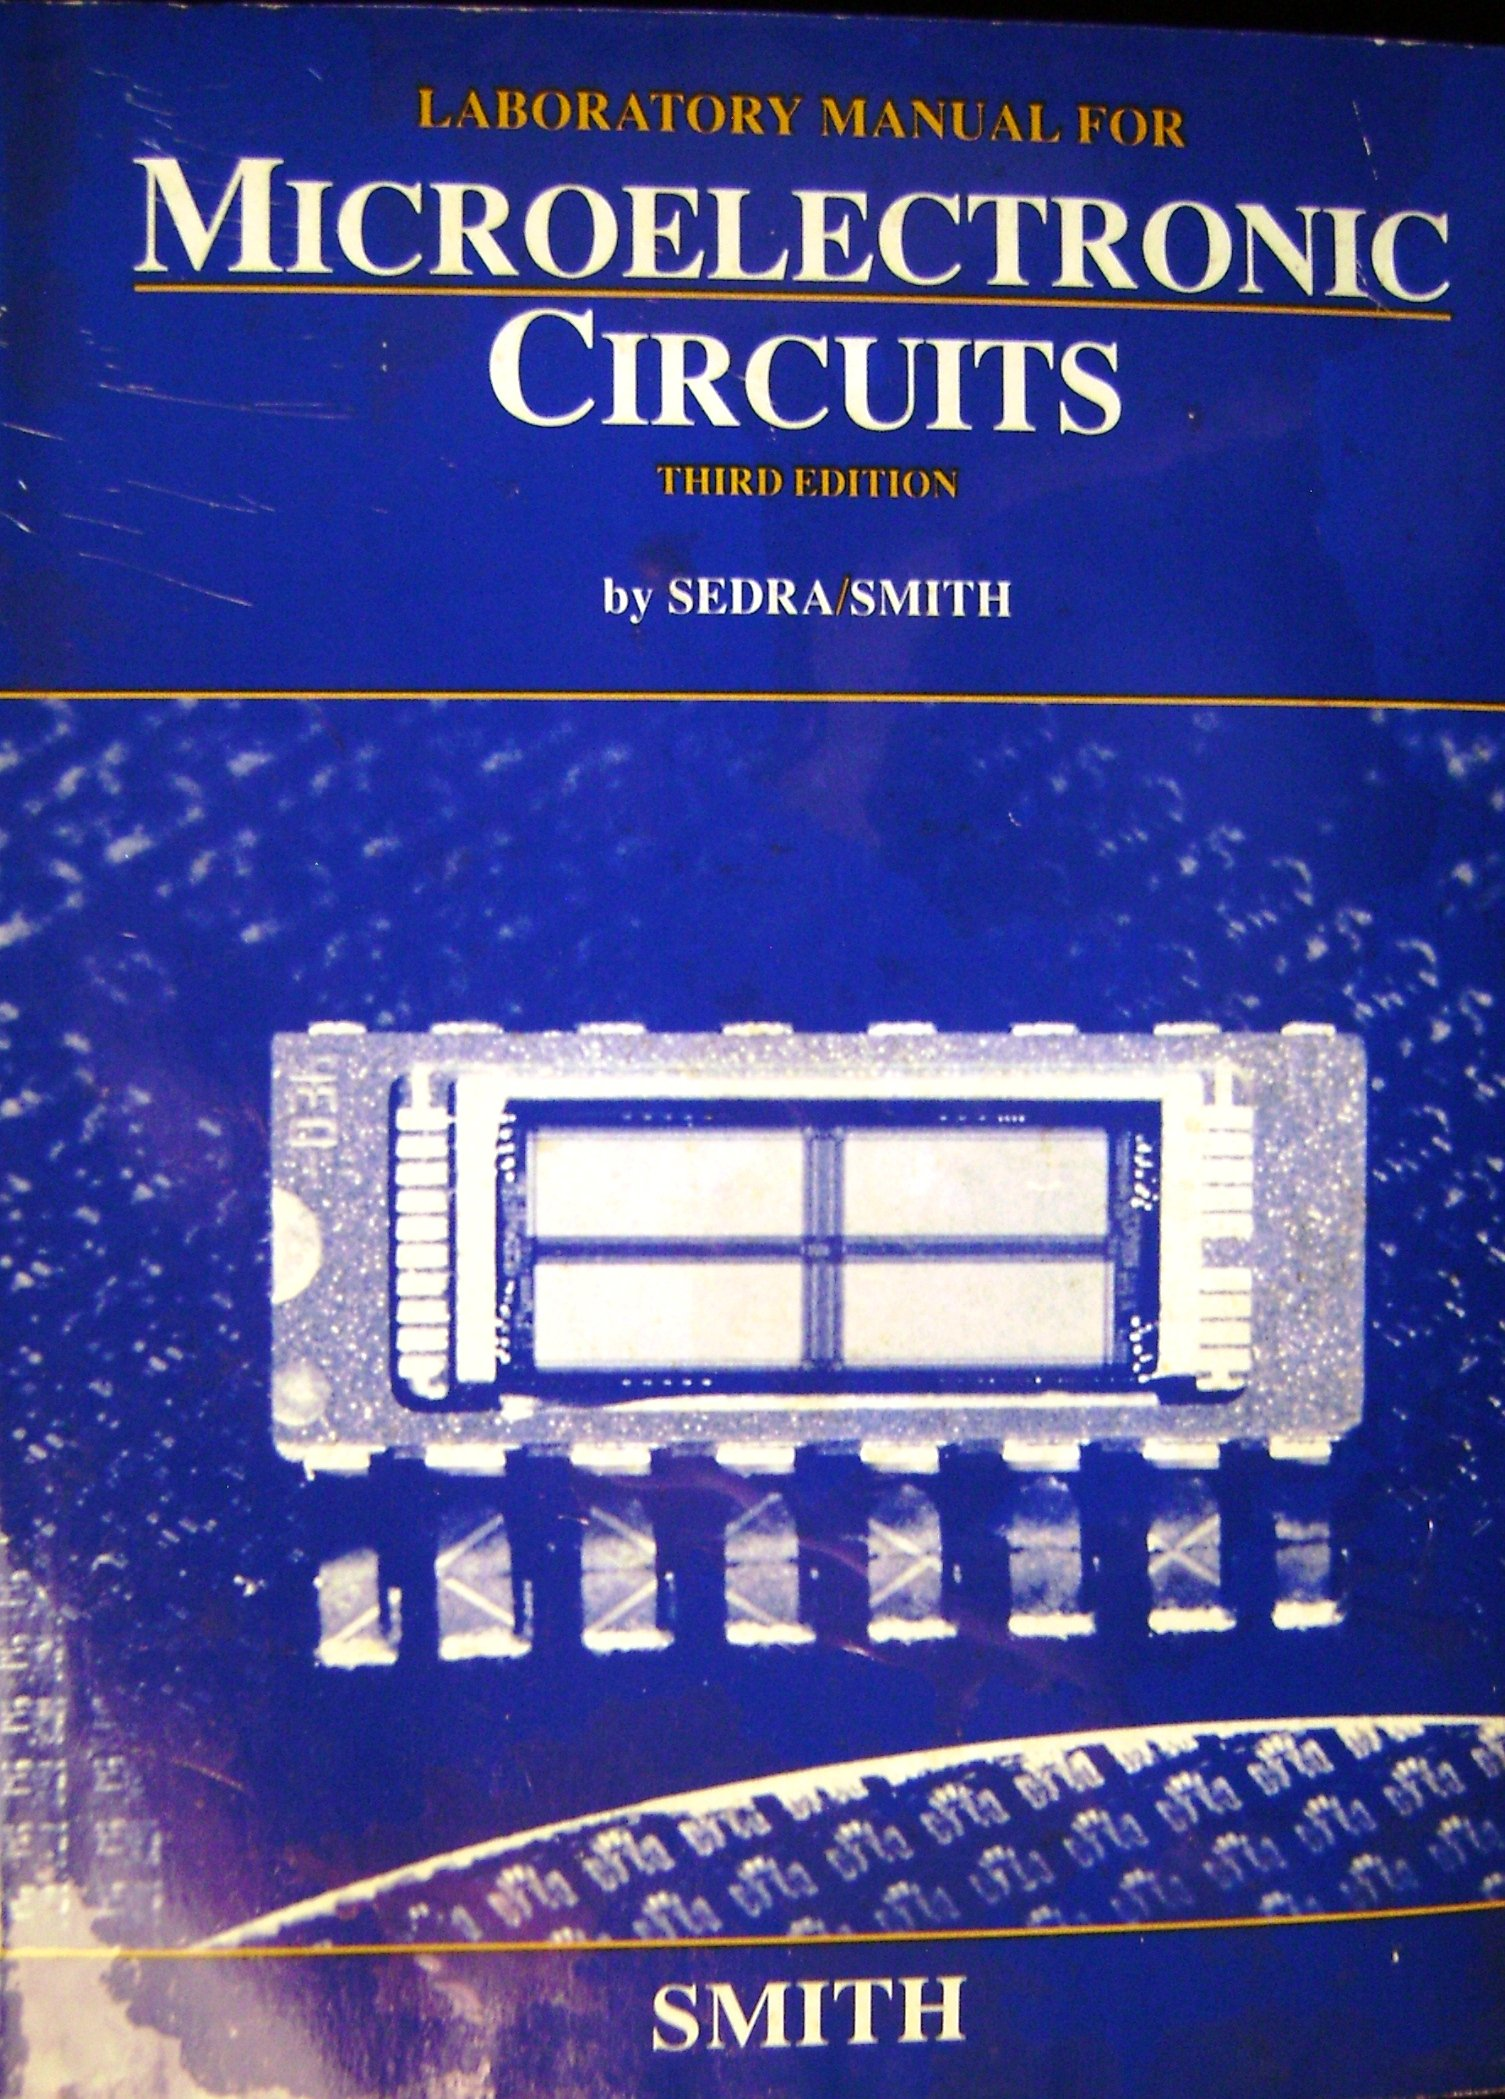 Buy Microelectronic Circuits: Laboratory Manual to 3r.e Book Online at Low  Prices in India   Microelectronic Circuits: Laboratory Manual to 3r.e  Reviews ...